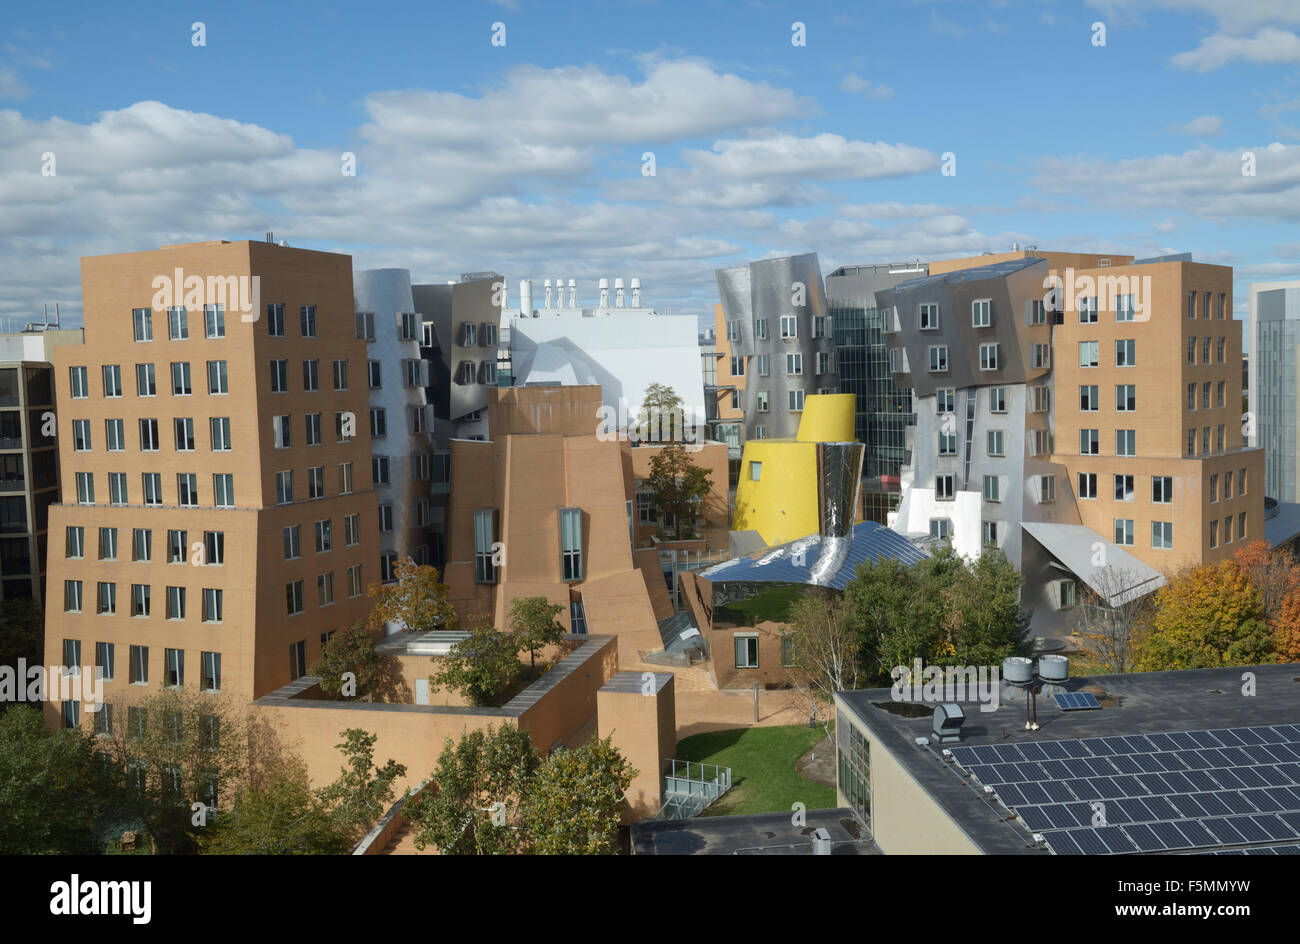 Ray and Maria Stata Center building, on campus of MIT.  Designed by Frank Gehry. Deconstructivist architecture - Stock Image